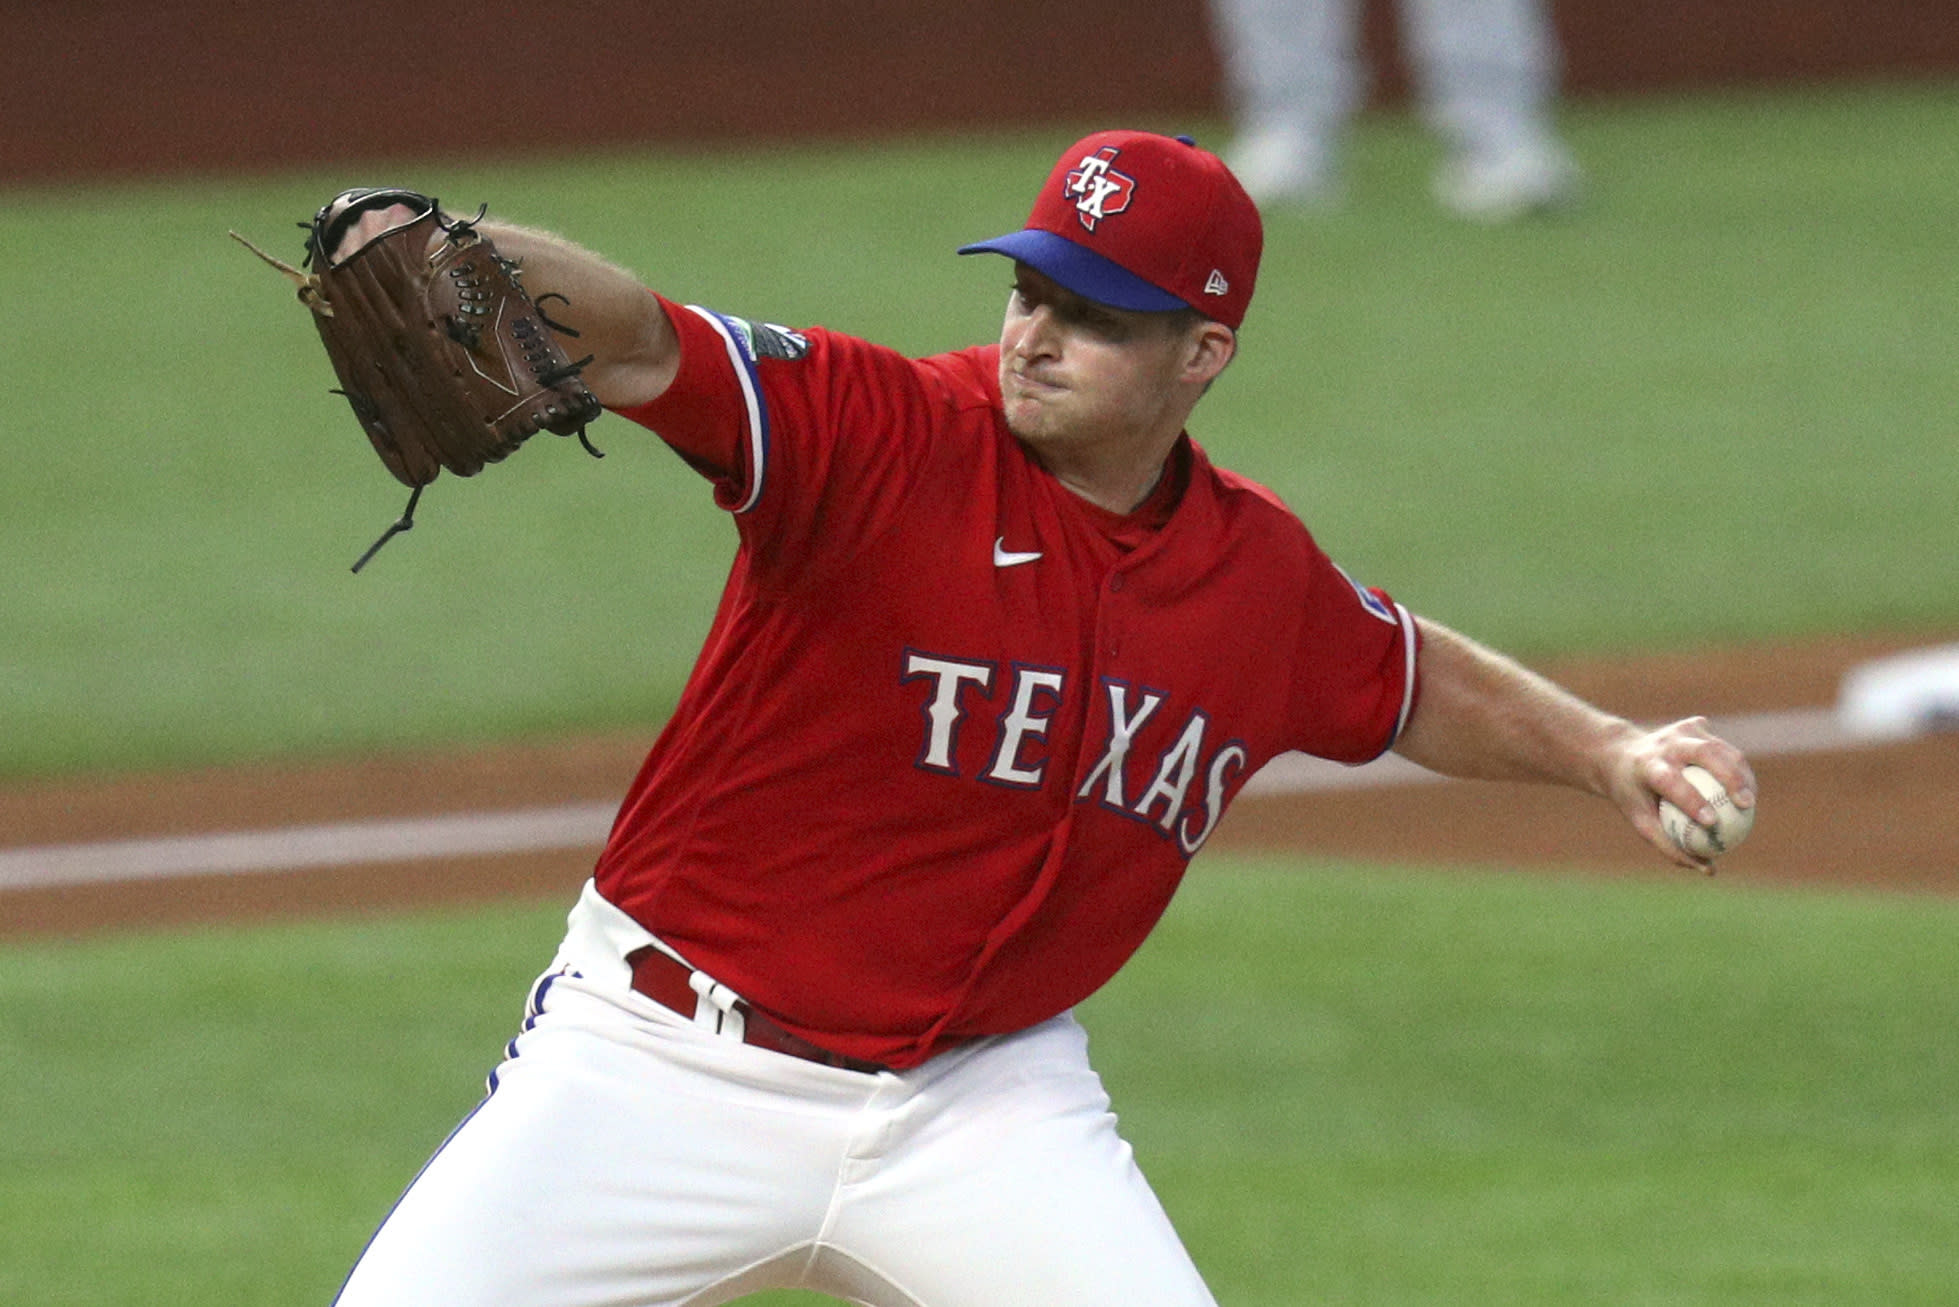 Texas Rangers relief pitcher Wes Benjamin (75) works the third inning against the Oakland Athletics in a baseball game Saturday, Sept. 12, 2020 in Arlington, Texas. (AP Photo/Richard W. Rodriguez)